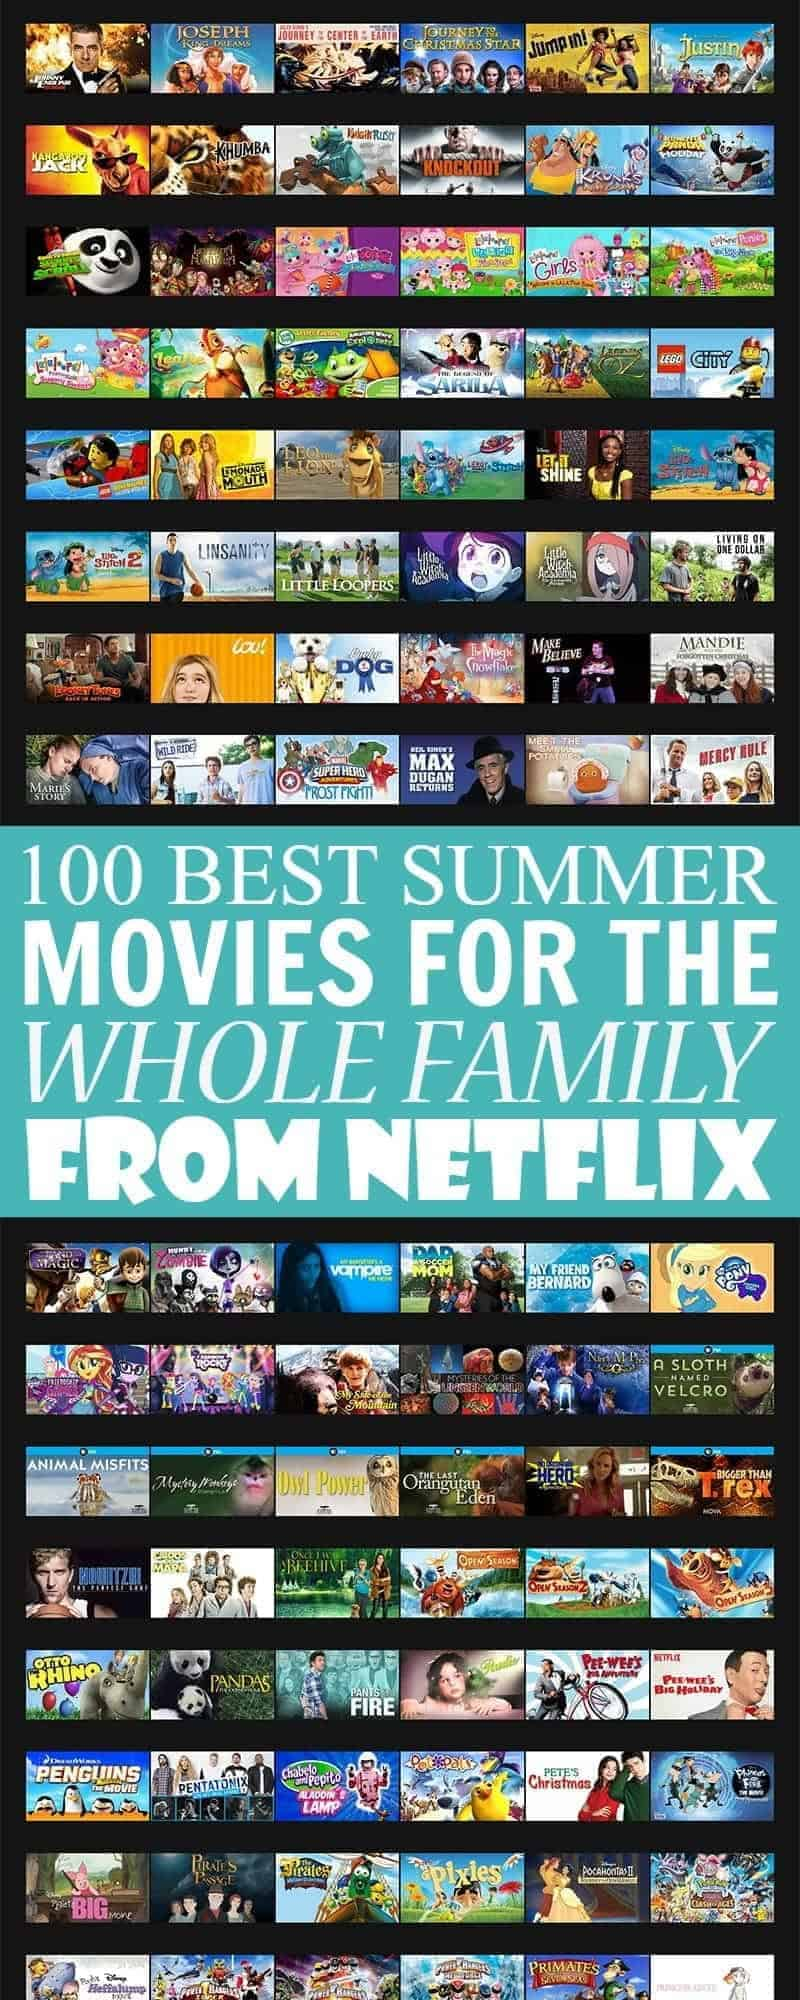 100 Best Summer Movies for the Whole Family on Netflix - take a break from summer fun to enjoy a movie with the family from this list of 100 family-friendly movies currently on Netflix.